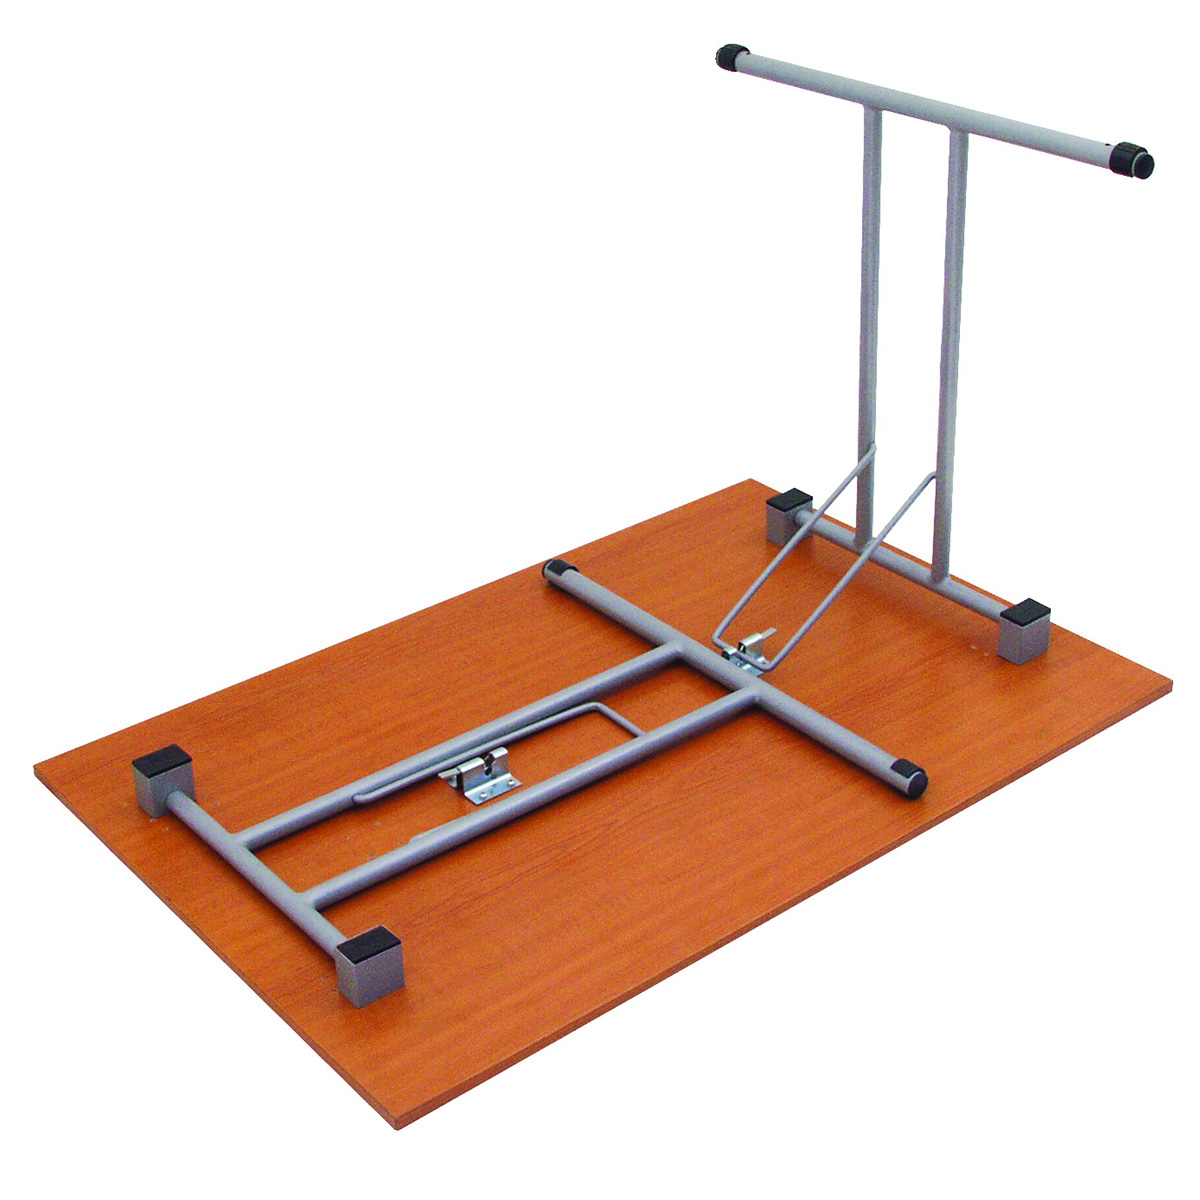 Foldable table Merlin